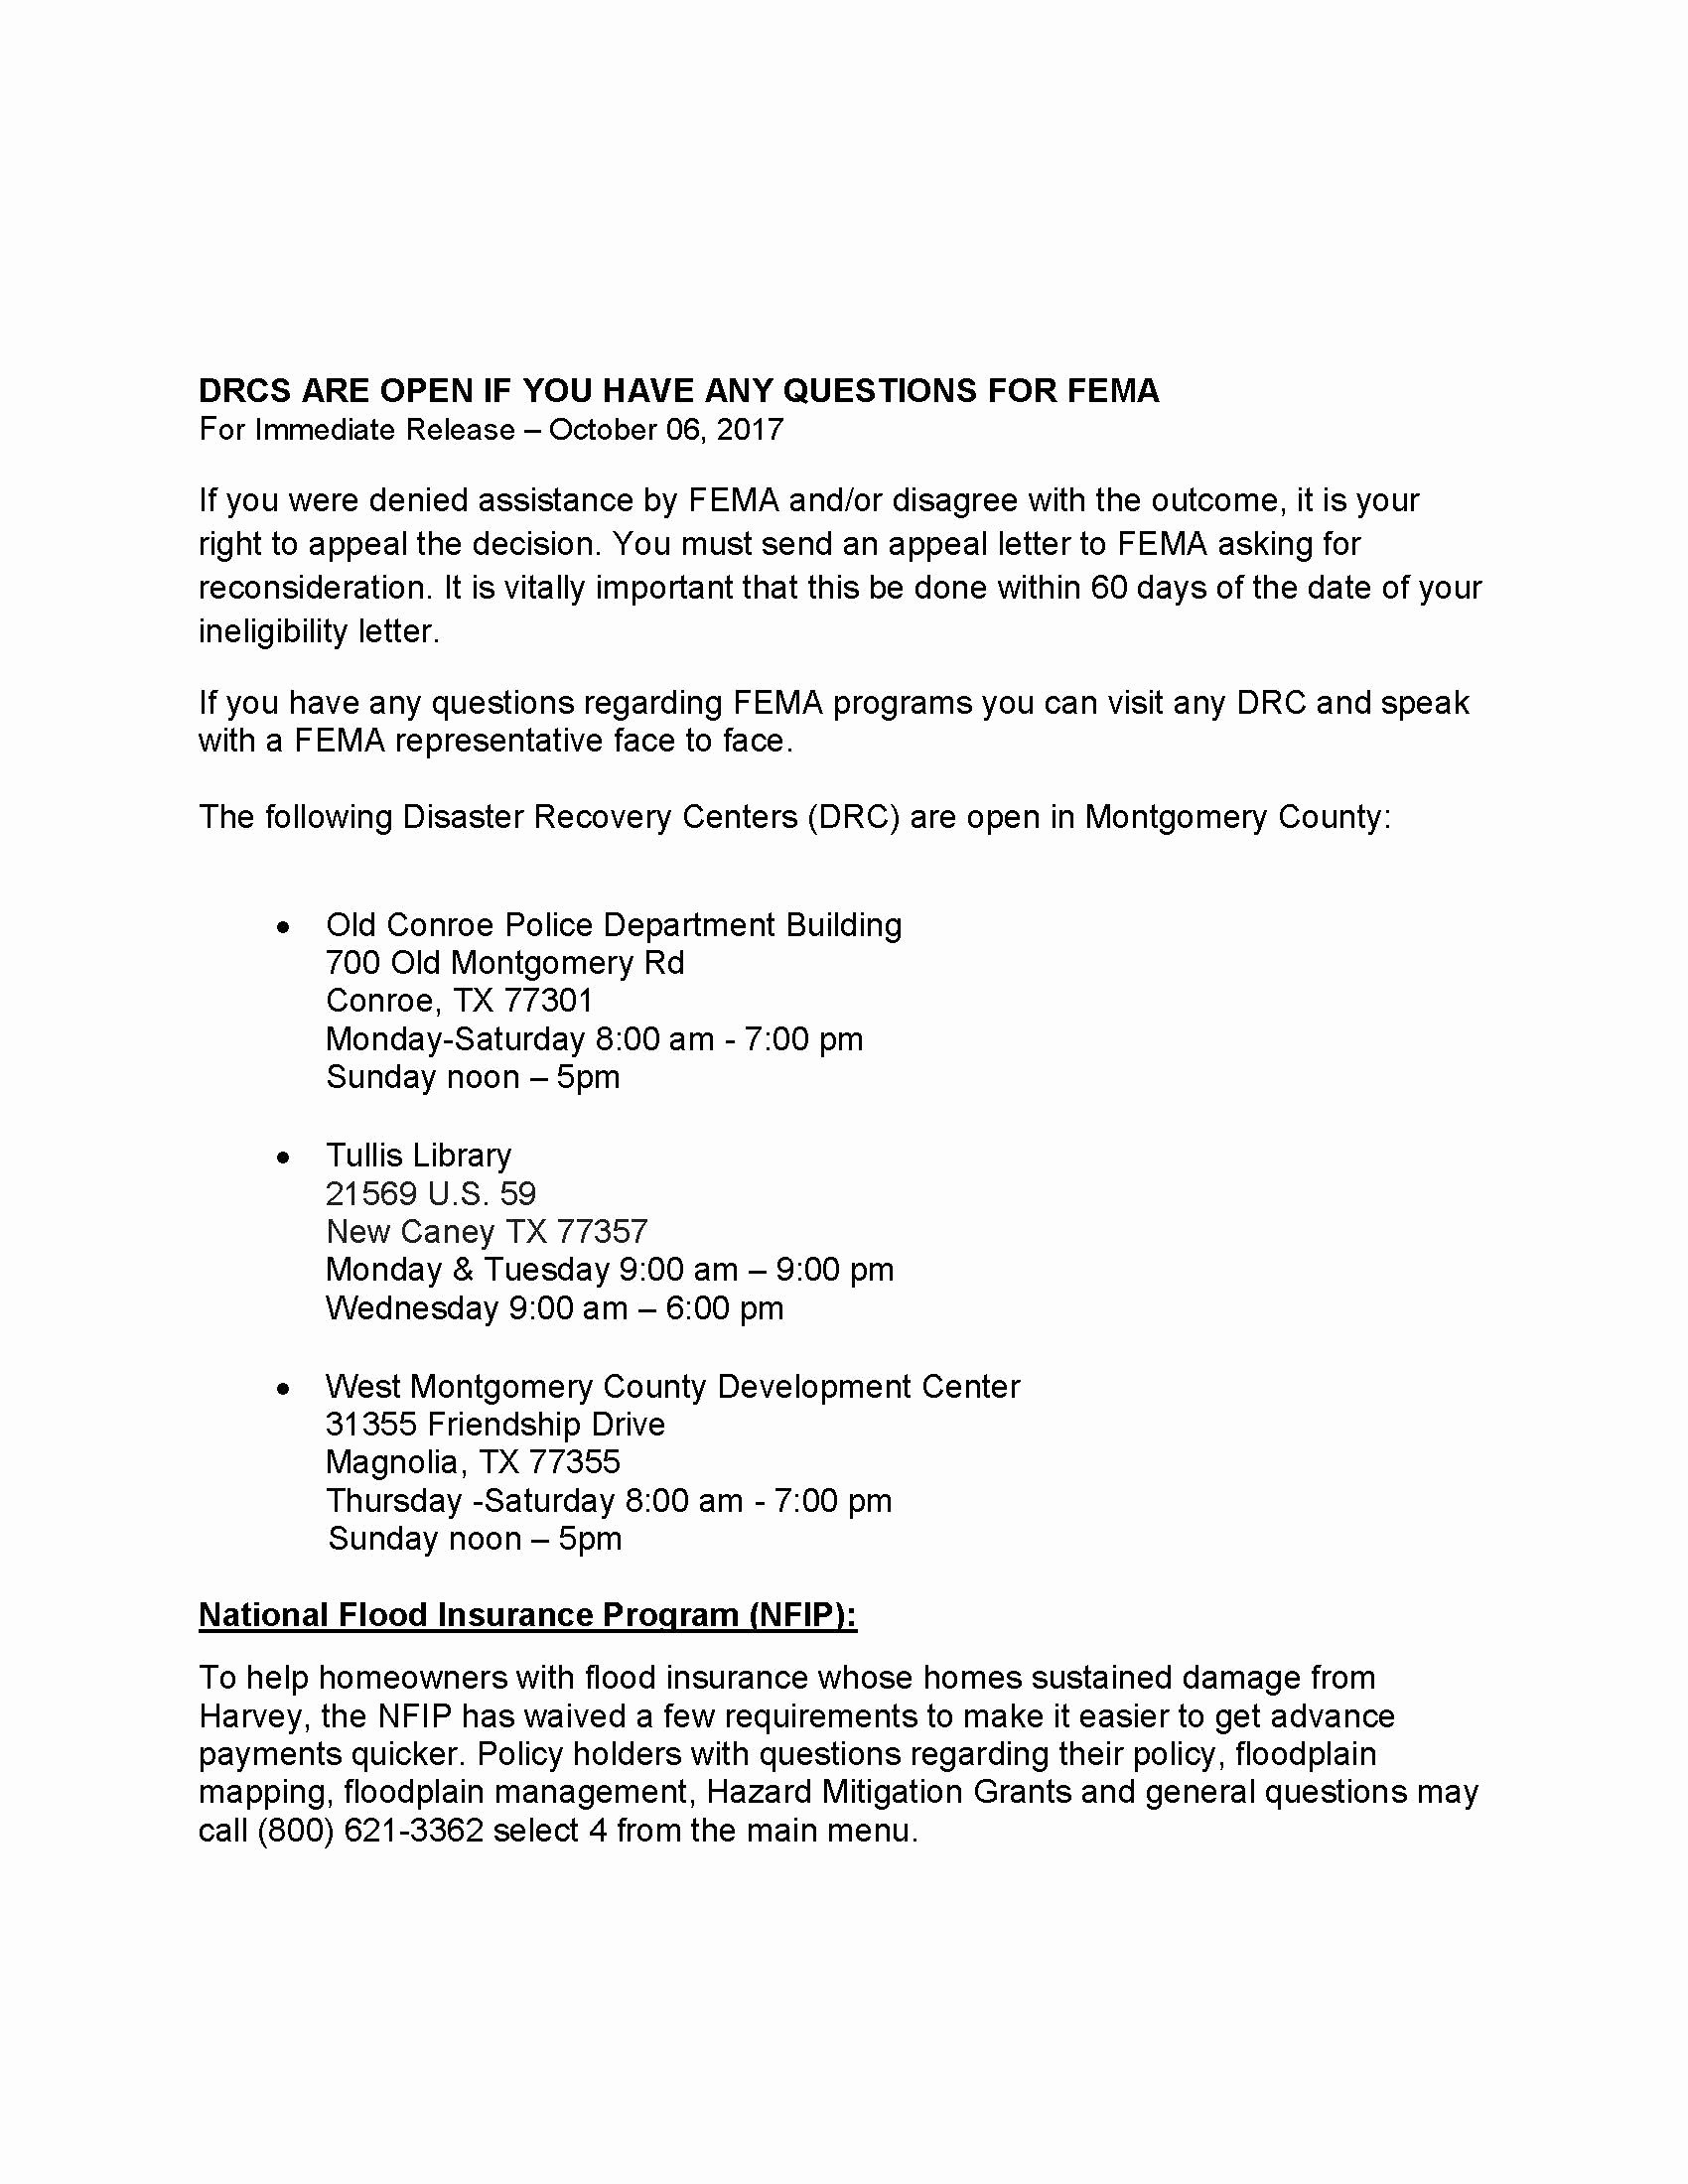 Fema Appeal Letter Template Fresh Press Release Drcs are Open In Montgomery County 10 6 17